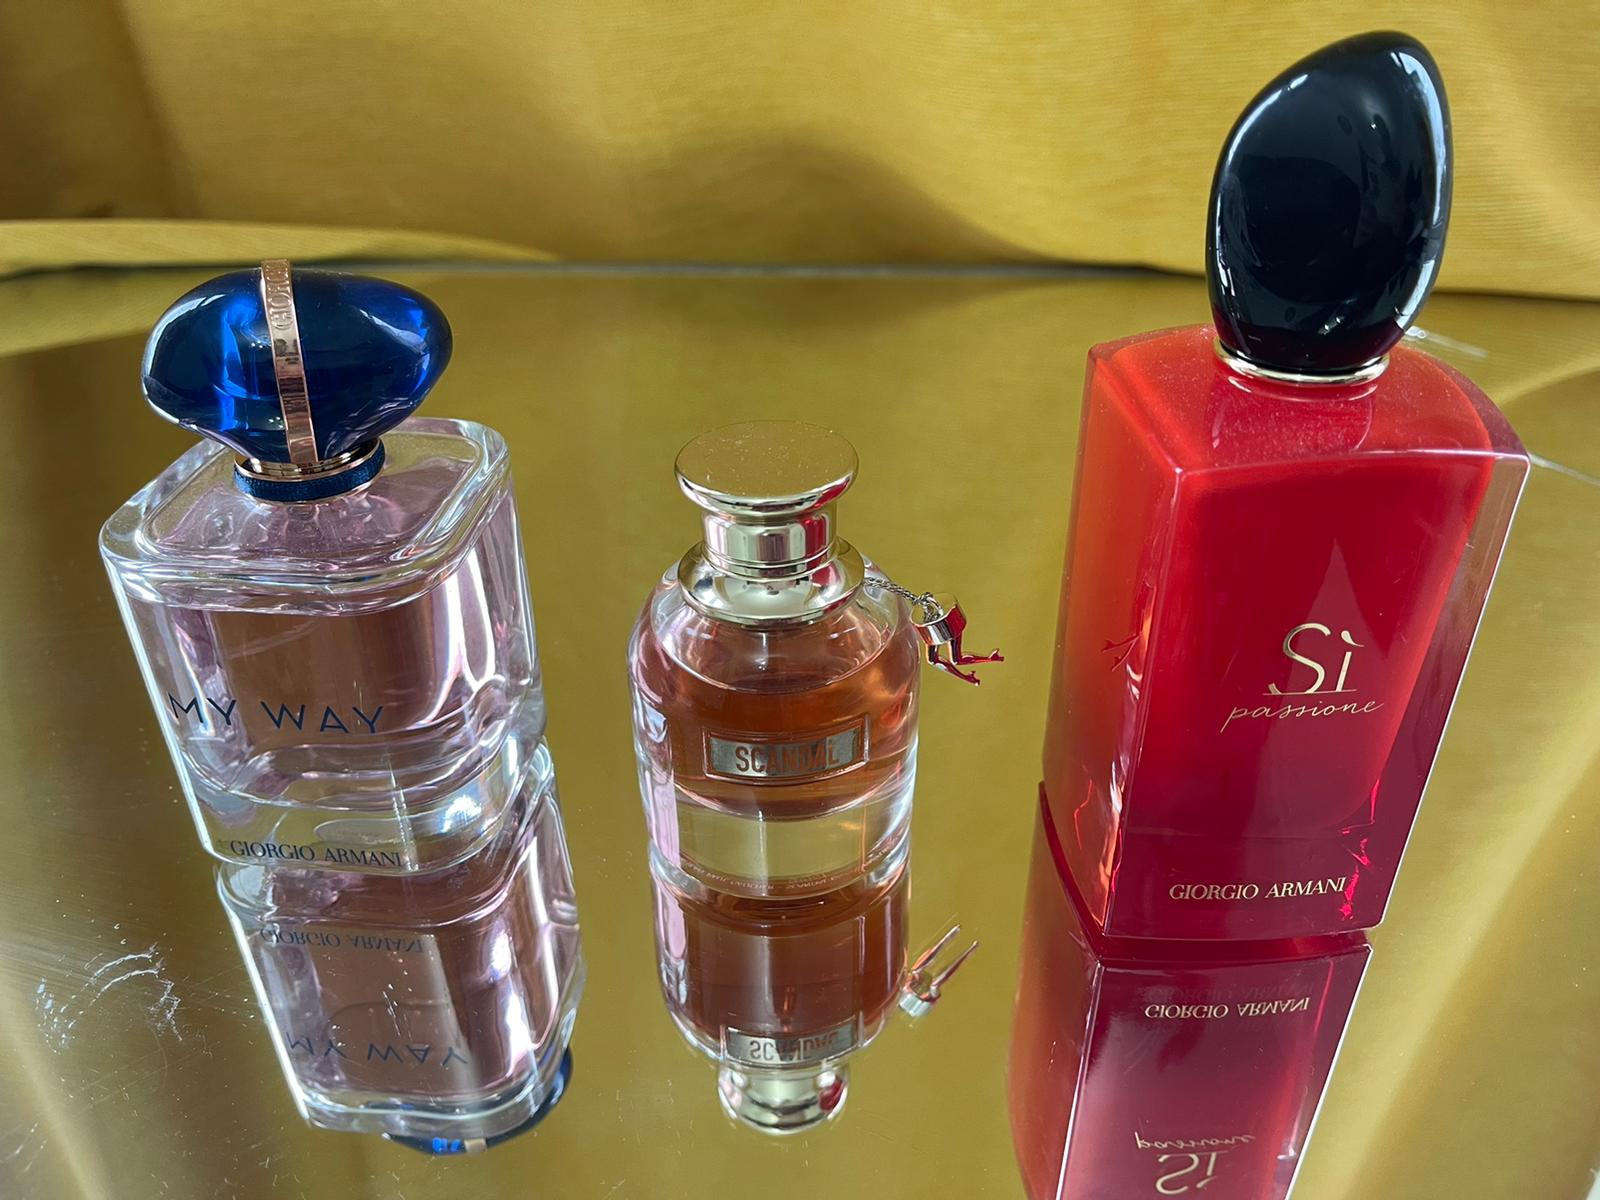 My three favourite Perfumes of 2020!